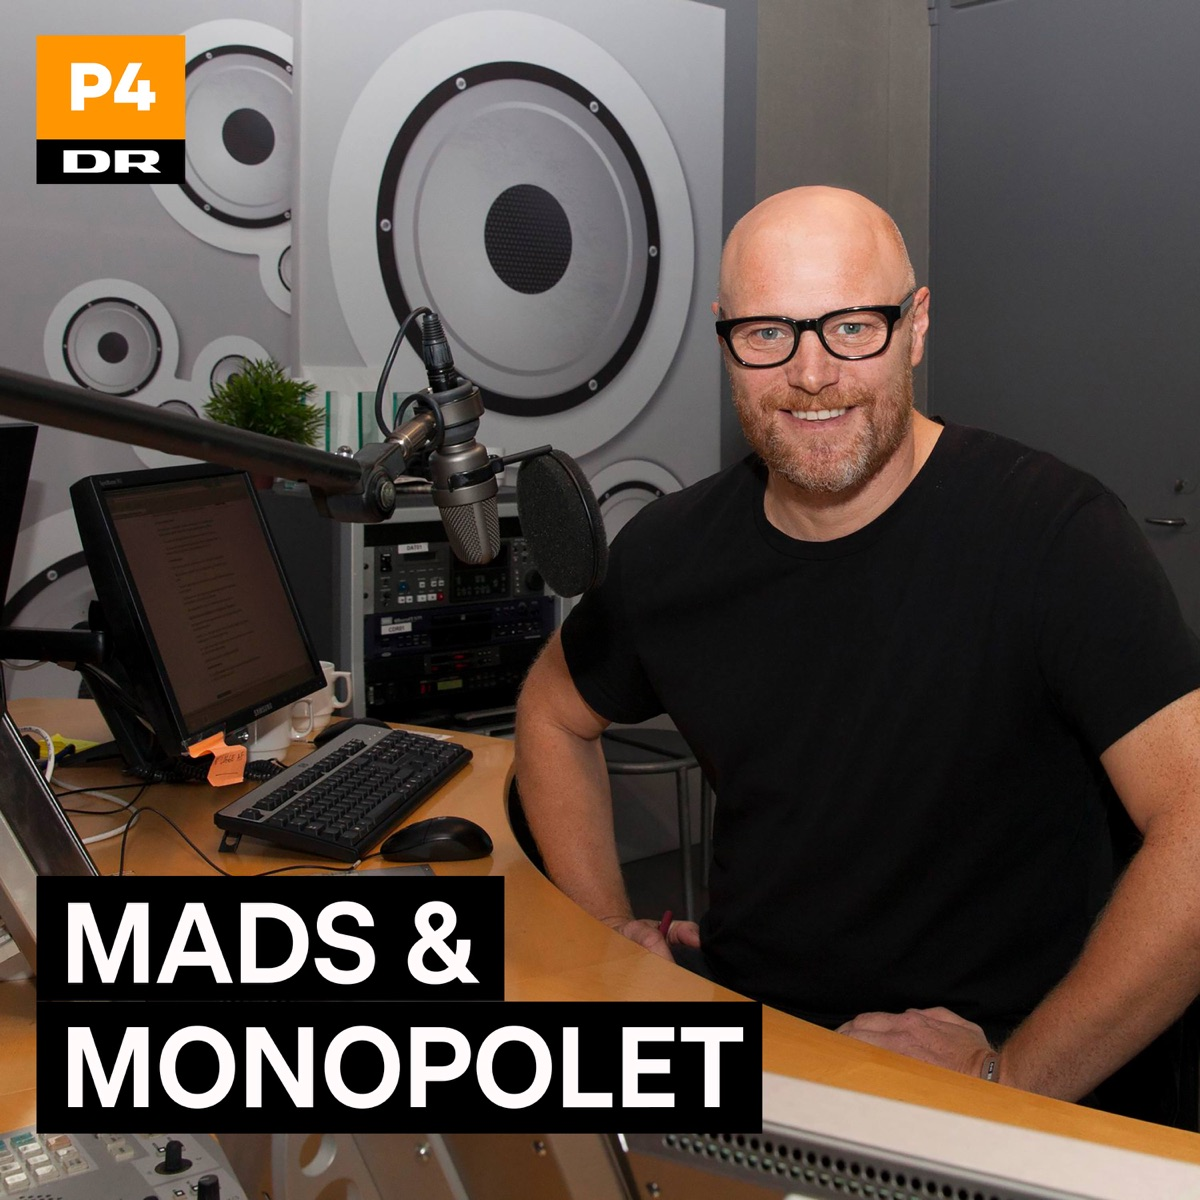 Mads & Monopolet - podcast - 29. aug 2020